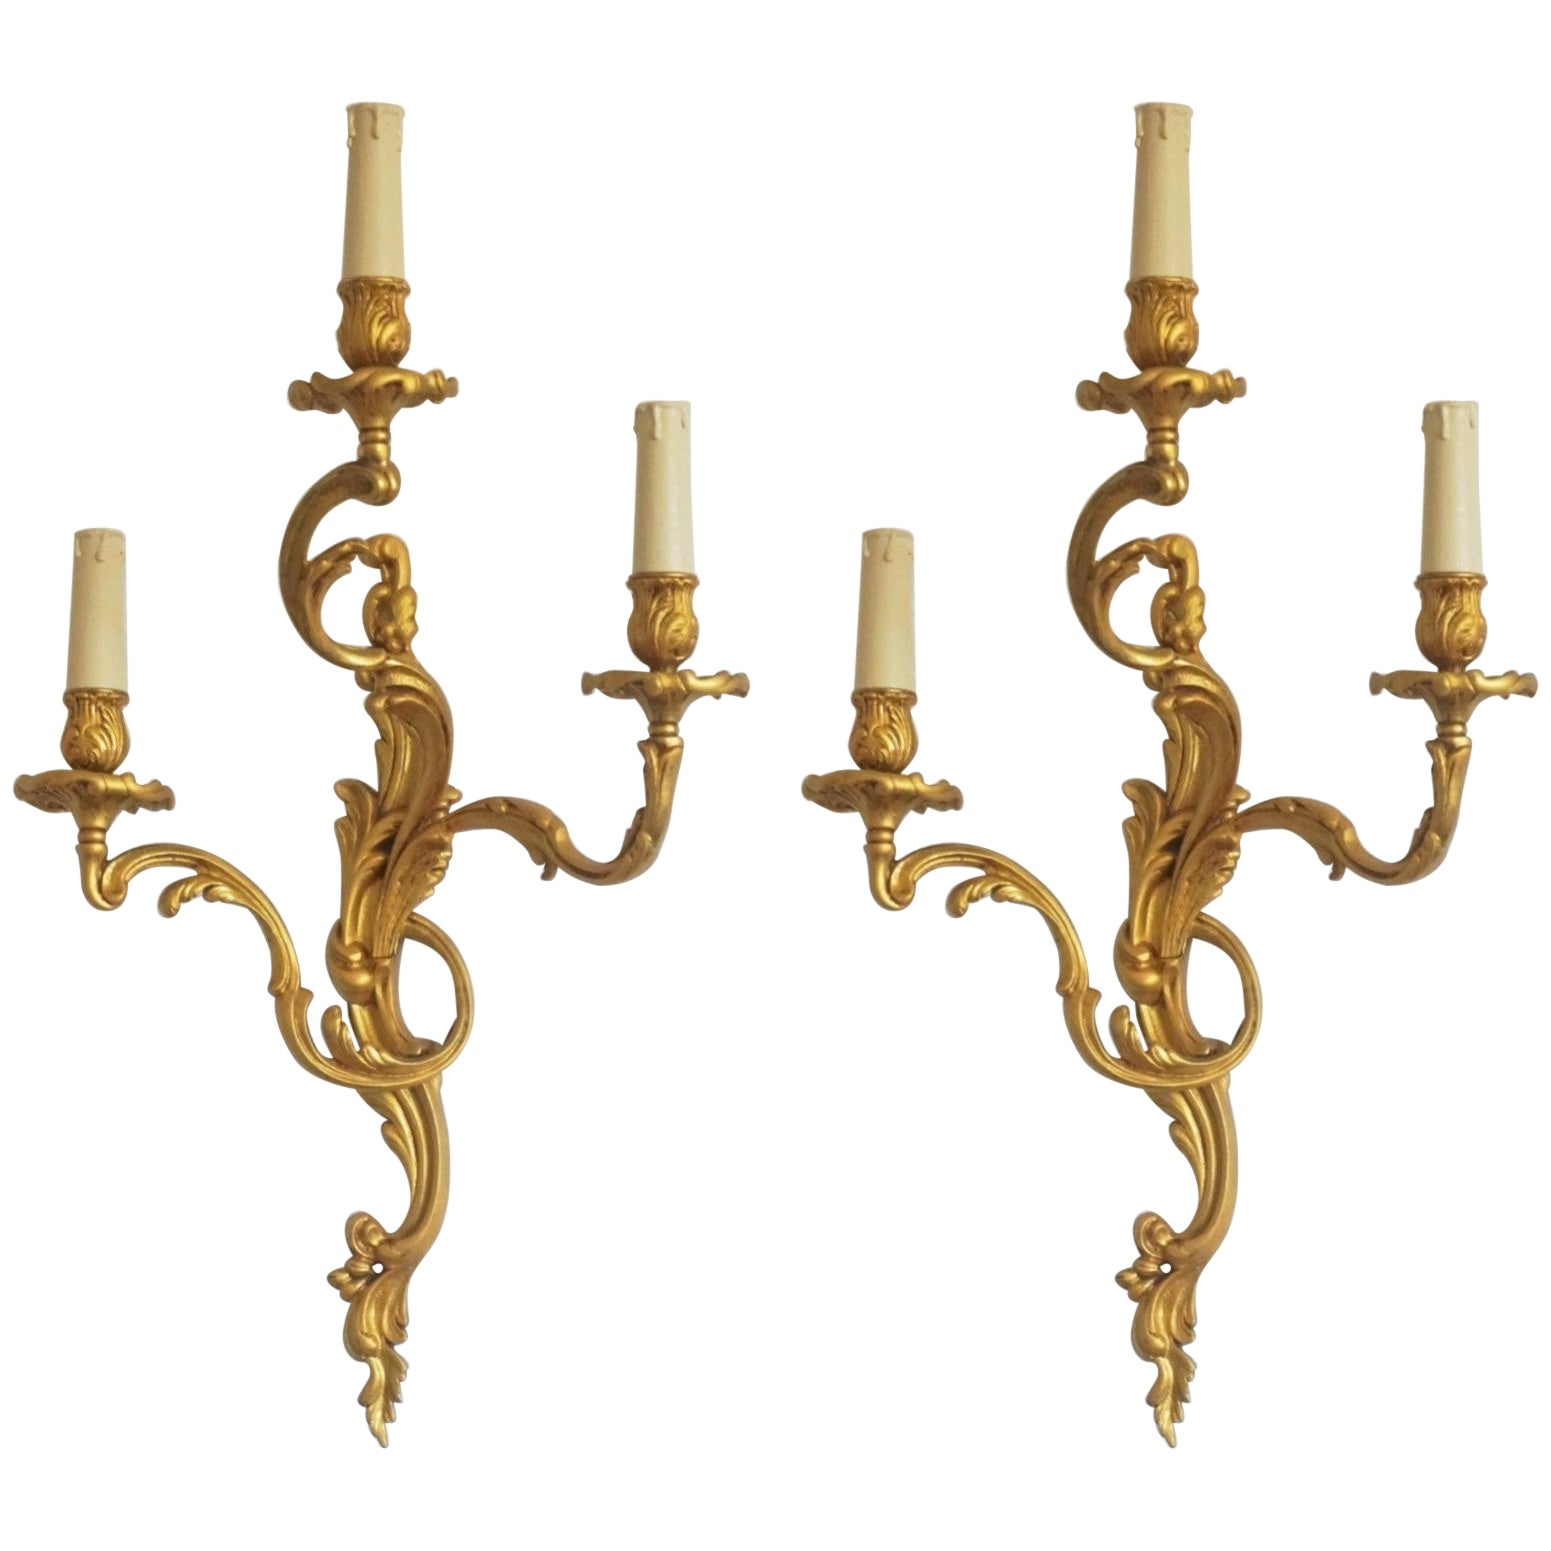 Pair of Large French Louis XVI Style Gilt Bronze Three-Light Wall Sconces